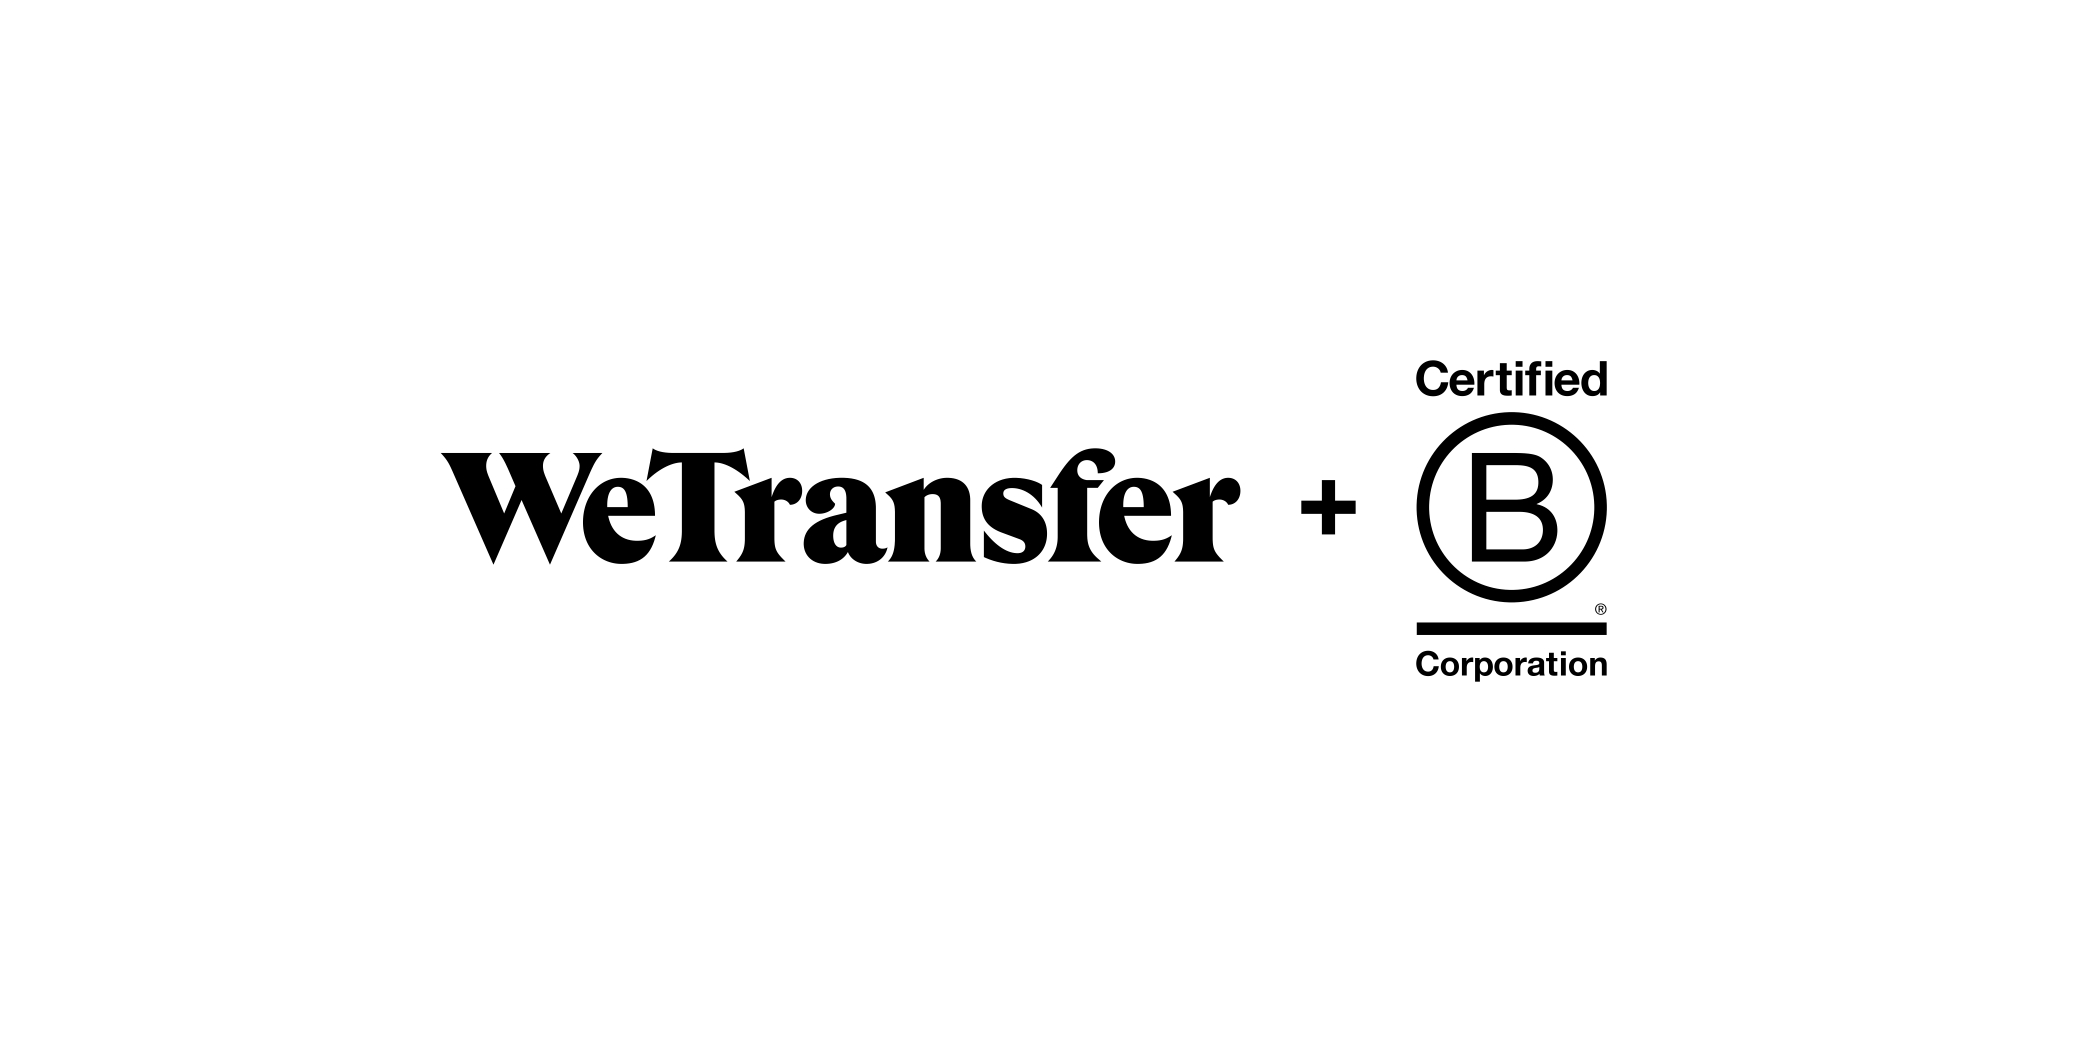 355355 wetransfer b corp lockup 80ea92 original 1590485642